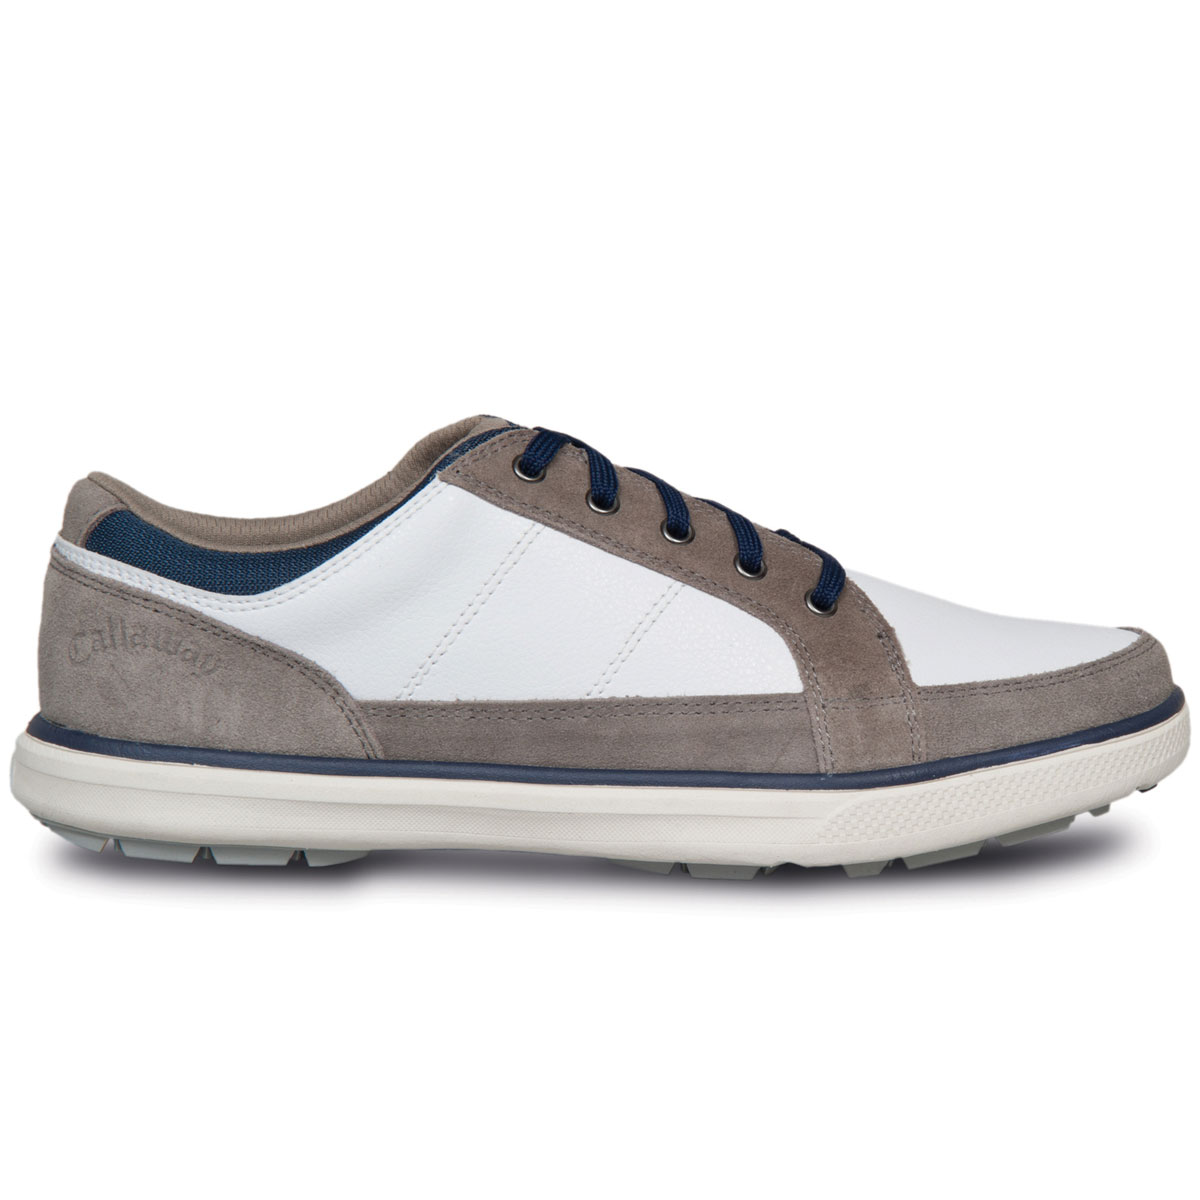 Mens Callaway Golf Shoes Uk